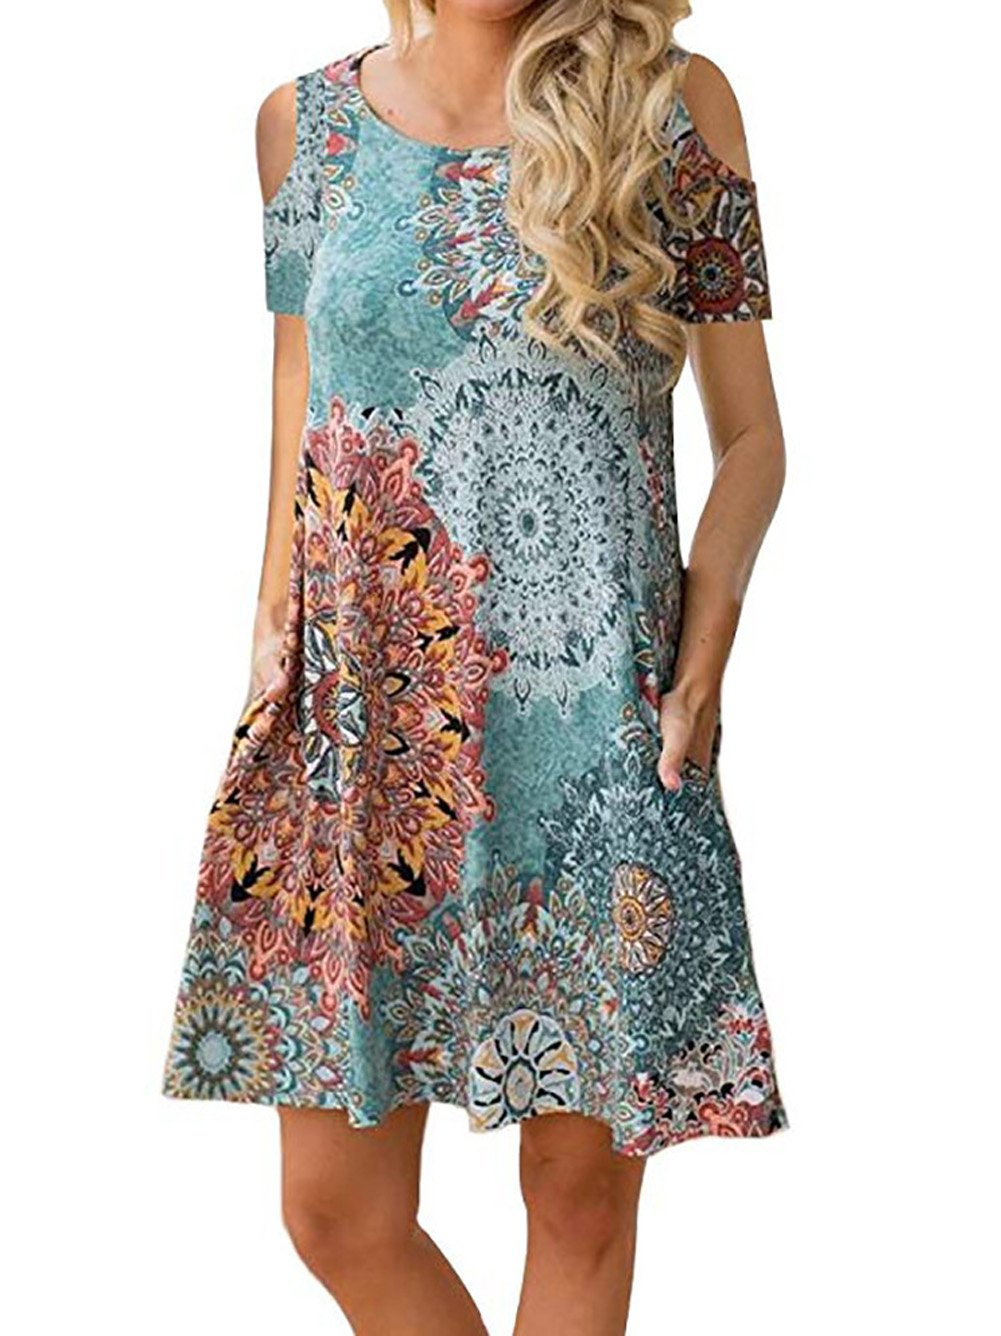 Voopptaw Women's Floral Print Cold Shoulder Tunic Top Swing T-Shirt Loose Casual Dress with Pockets Green Medium by Voopptaw